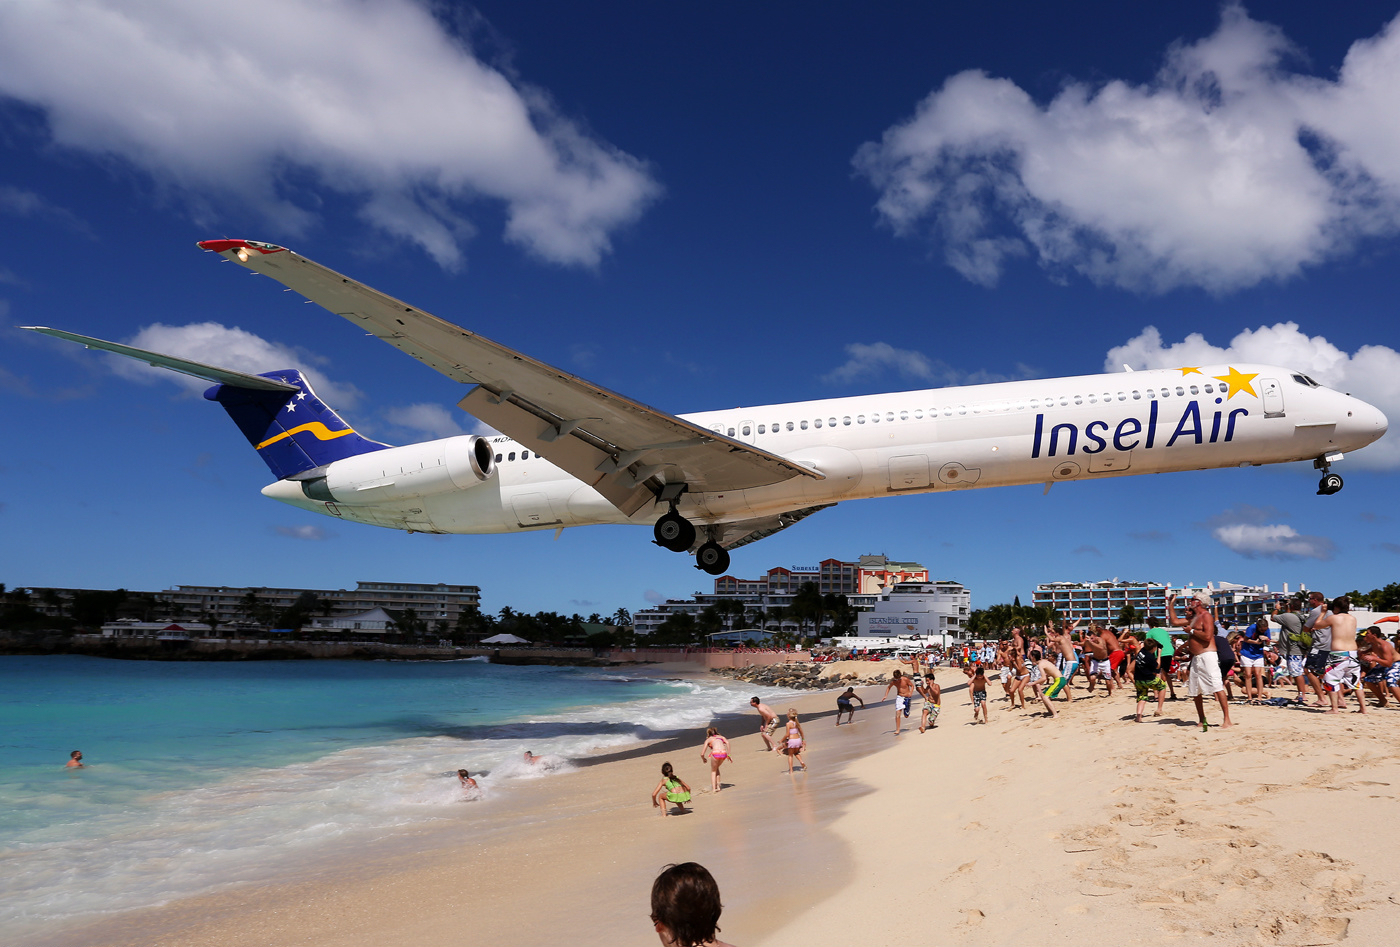 insel_air_mcdonnell_douglas_md-83_ultra-low_approach_over_maho_beach